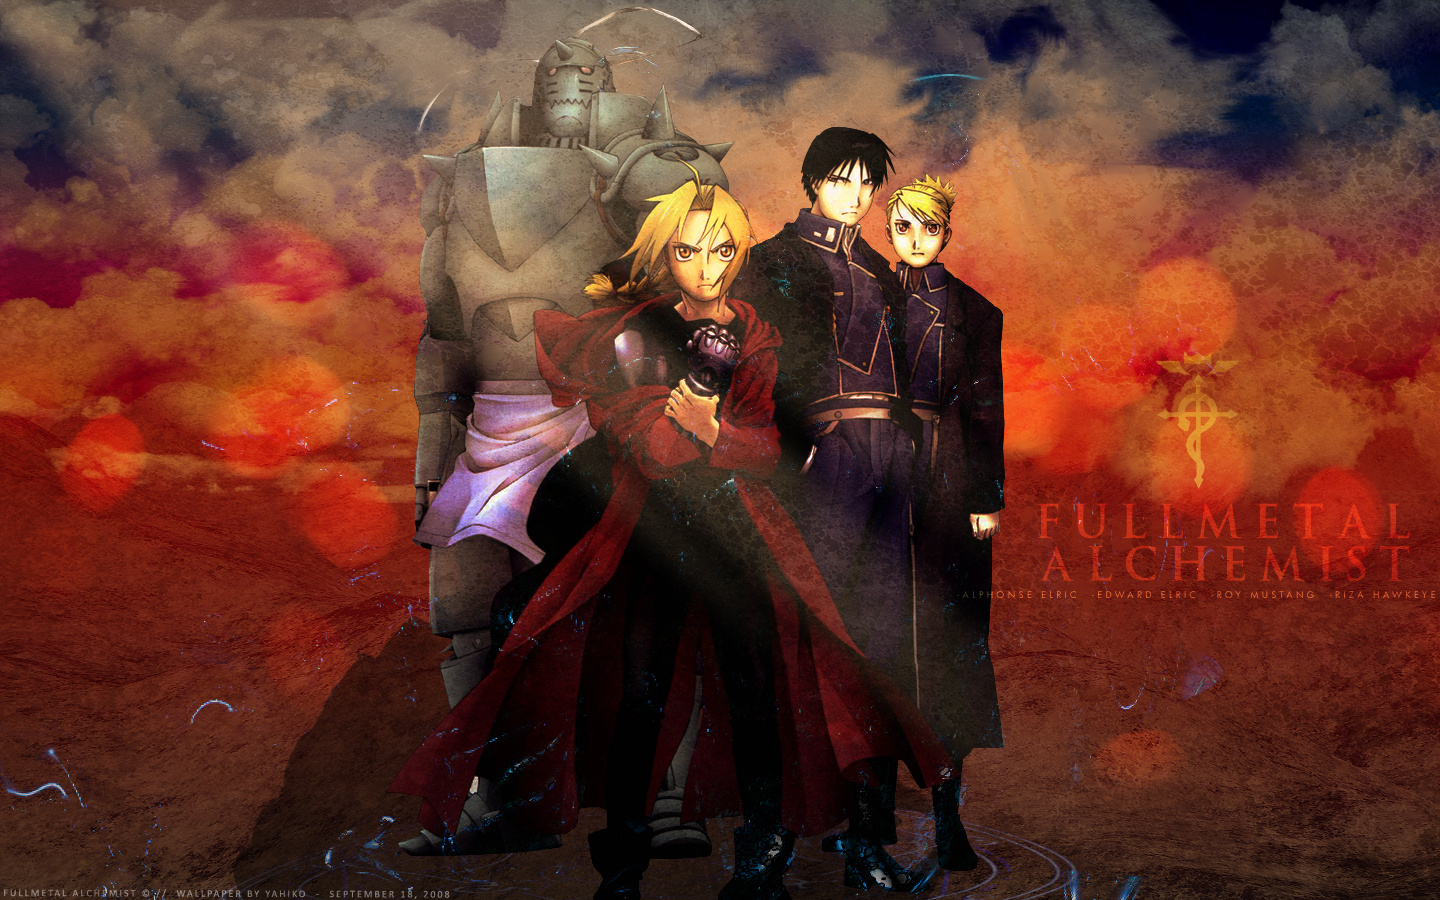 fullmetal alchemist brotherhood wallpaper hd wallpapersafari